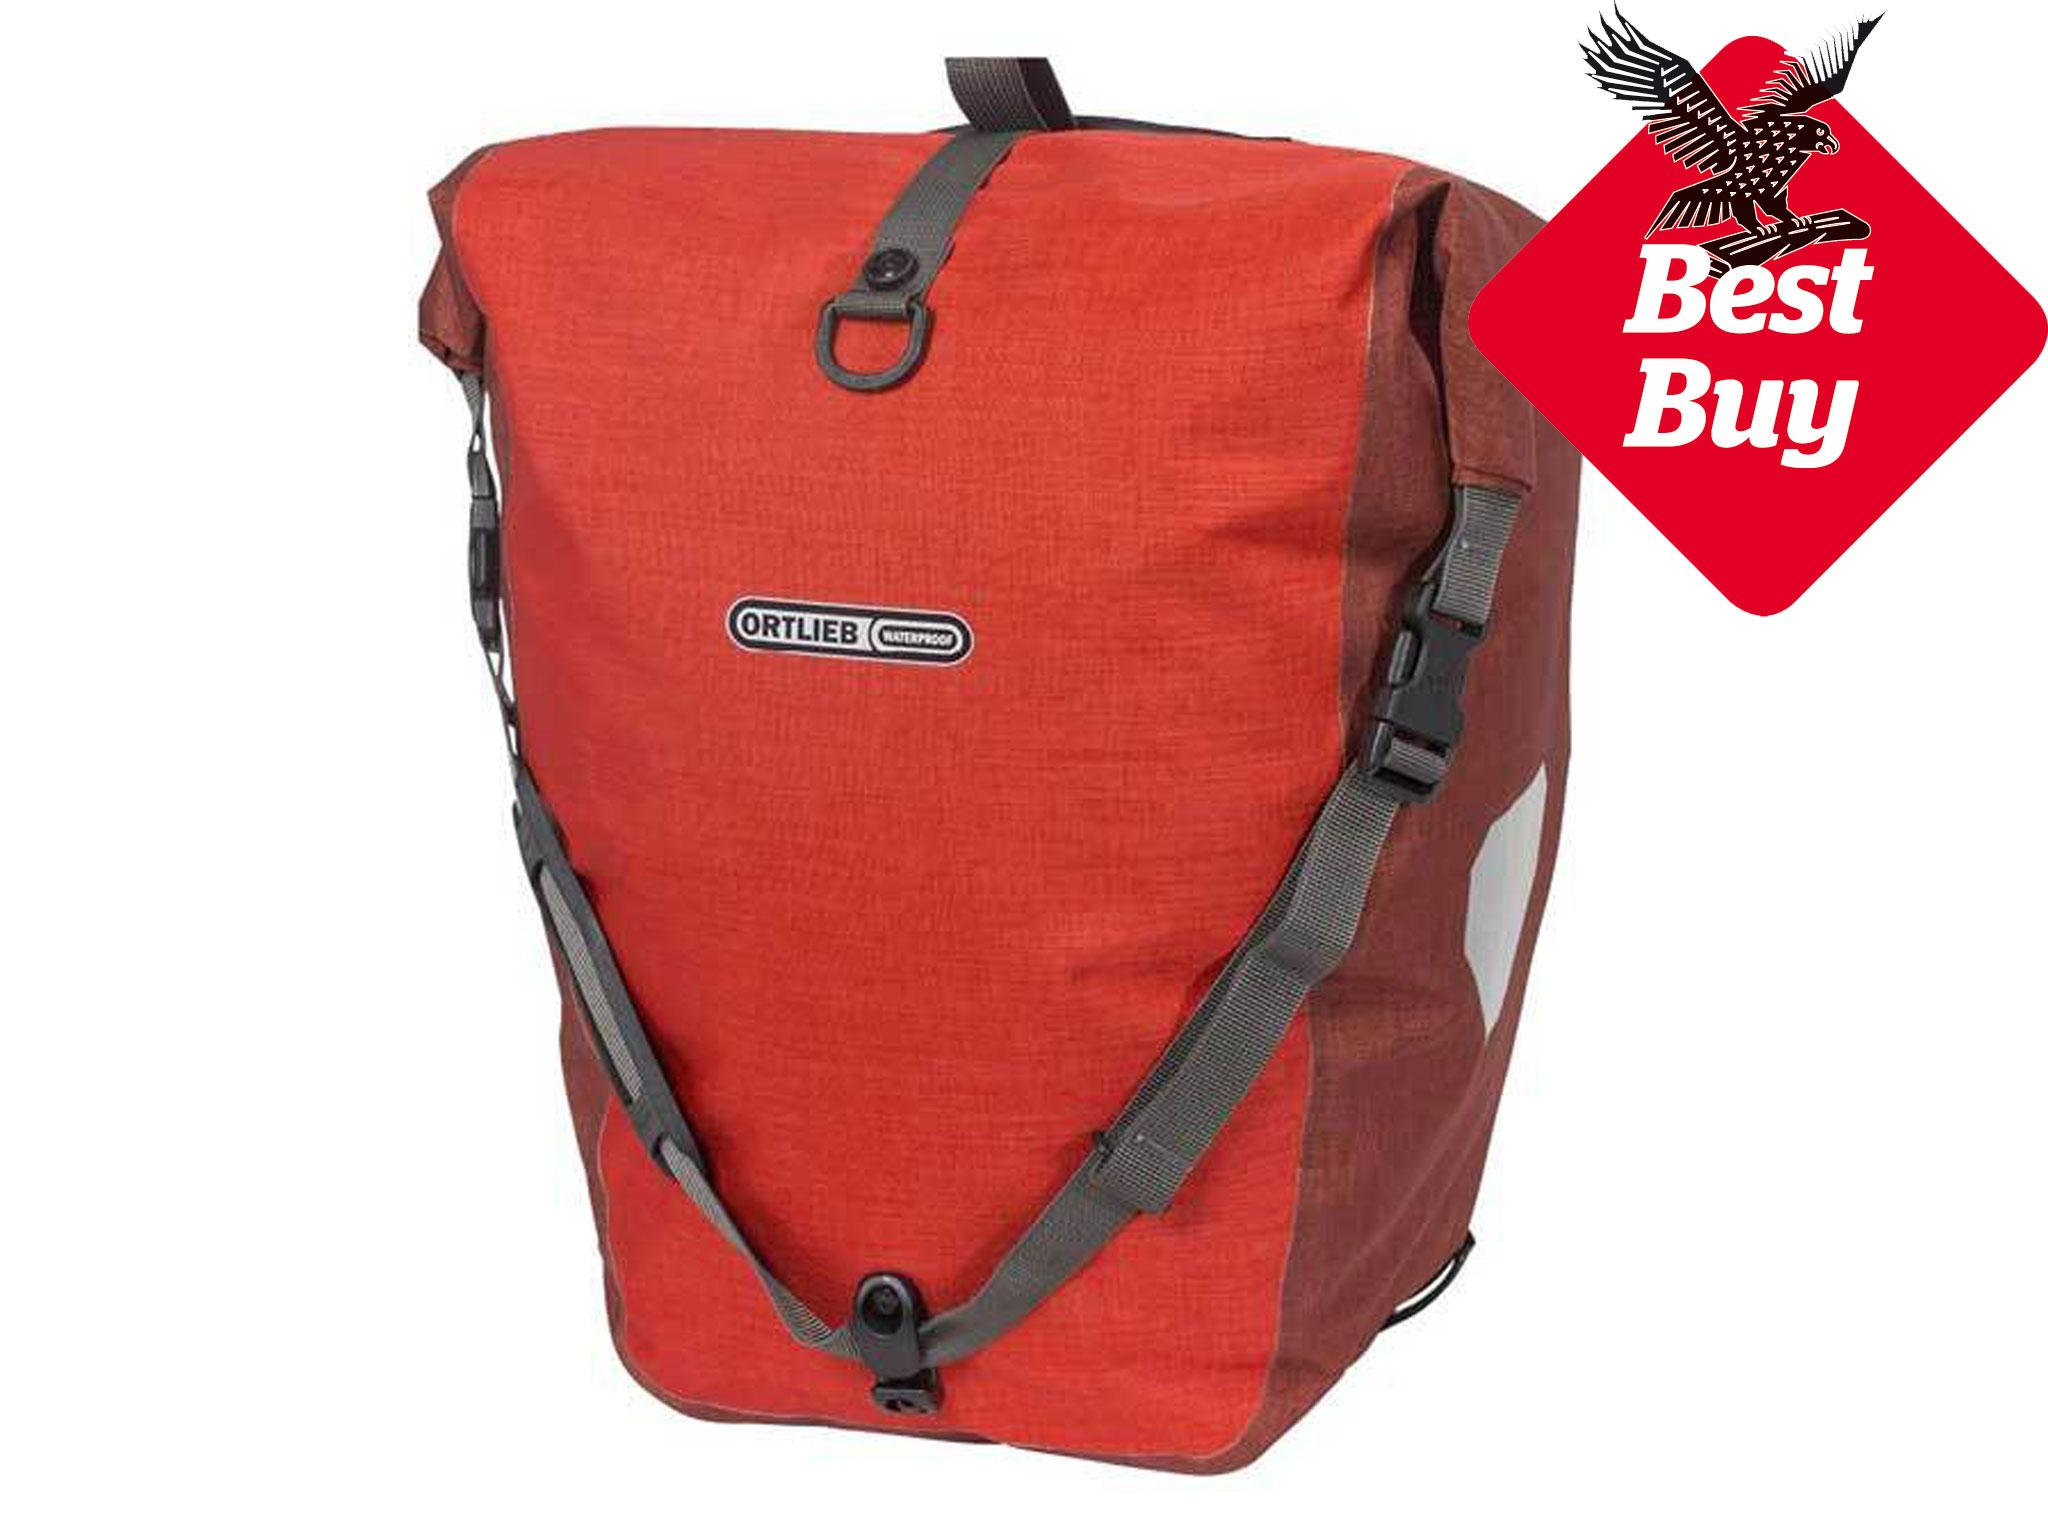 644cd3422b9 Ortlieb is the go-to brand for most tourers thanks to its panniers   waterproof and tear-resistant Cordura fabric